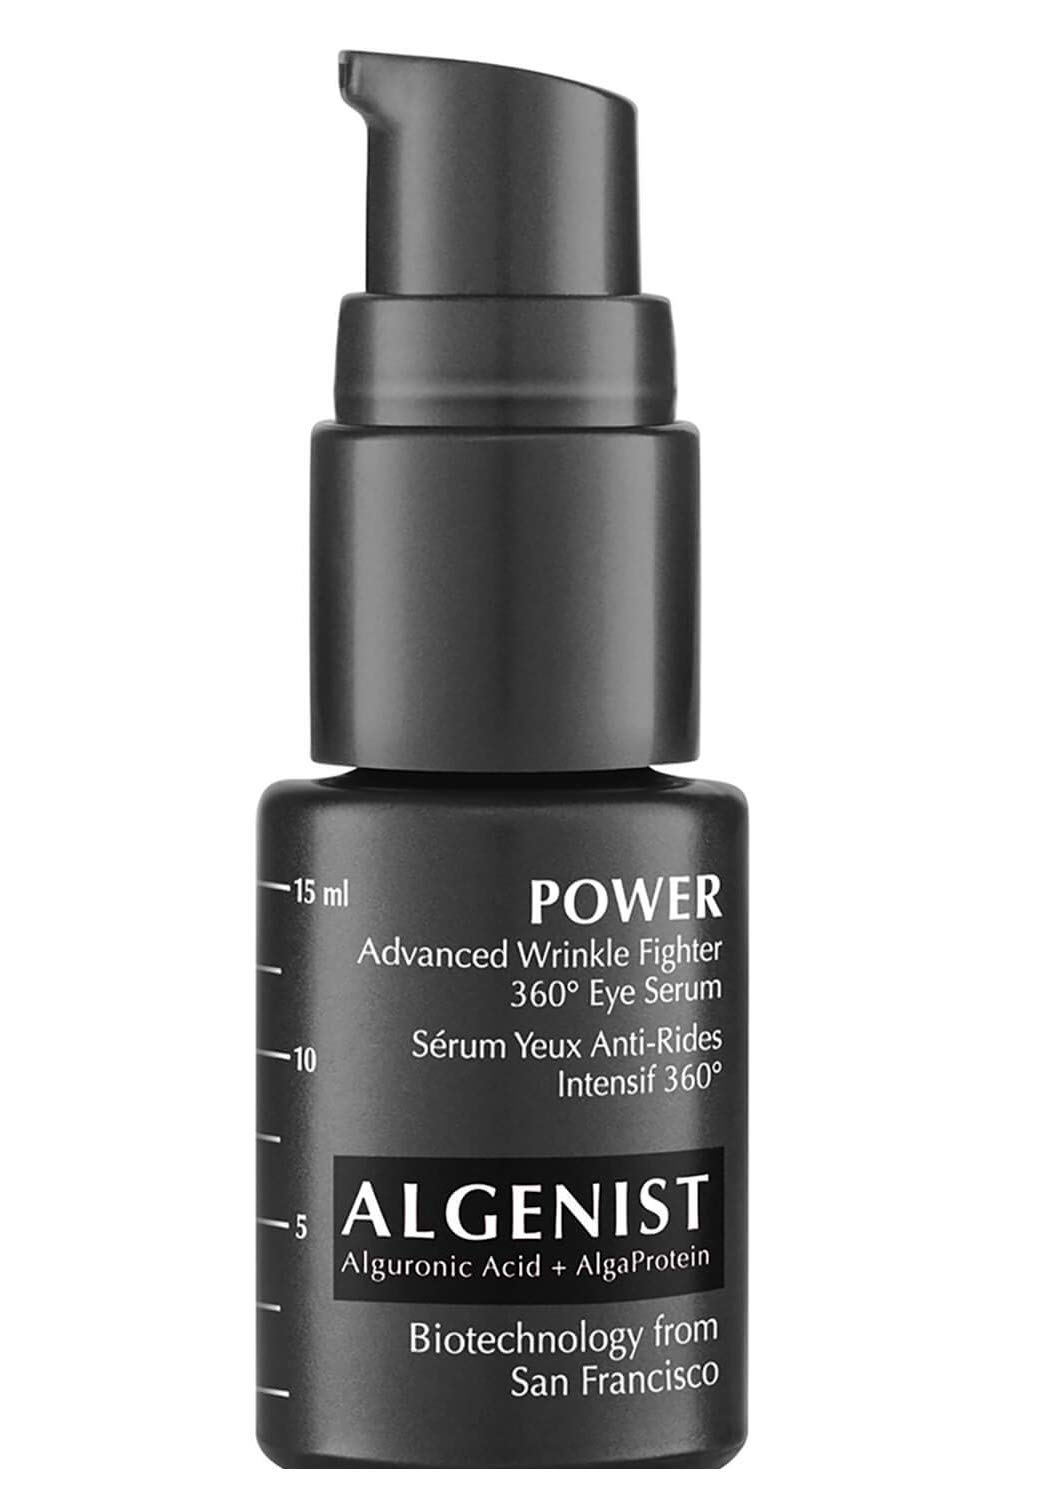 ALGENIST Power Advanced Wrinkle Fighter 360 Eye Serum 15ml